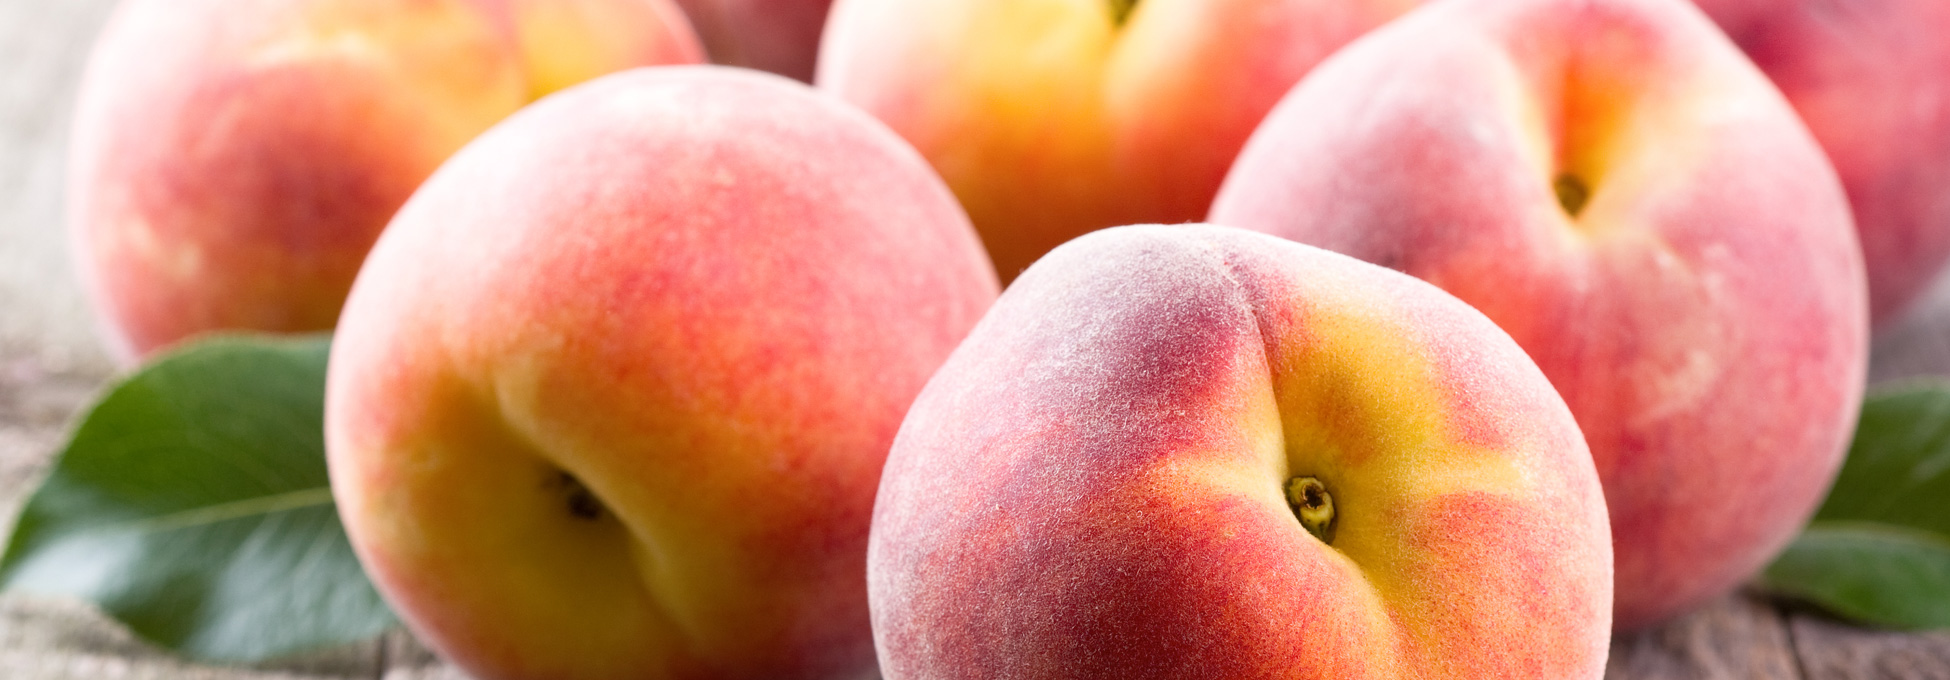 trigs-homepg-treeripened-peaches.jpg